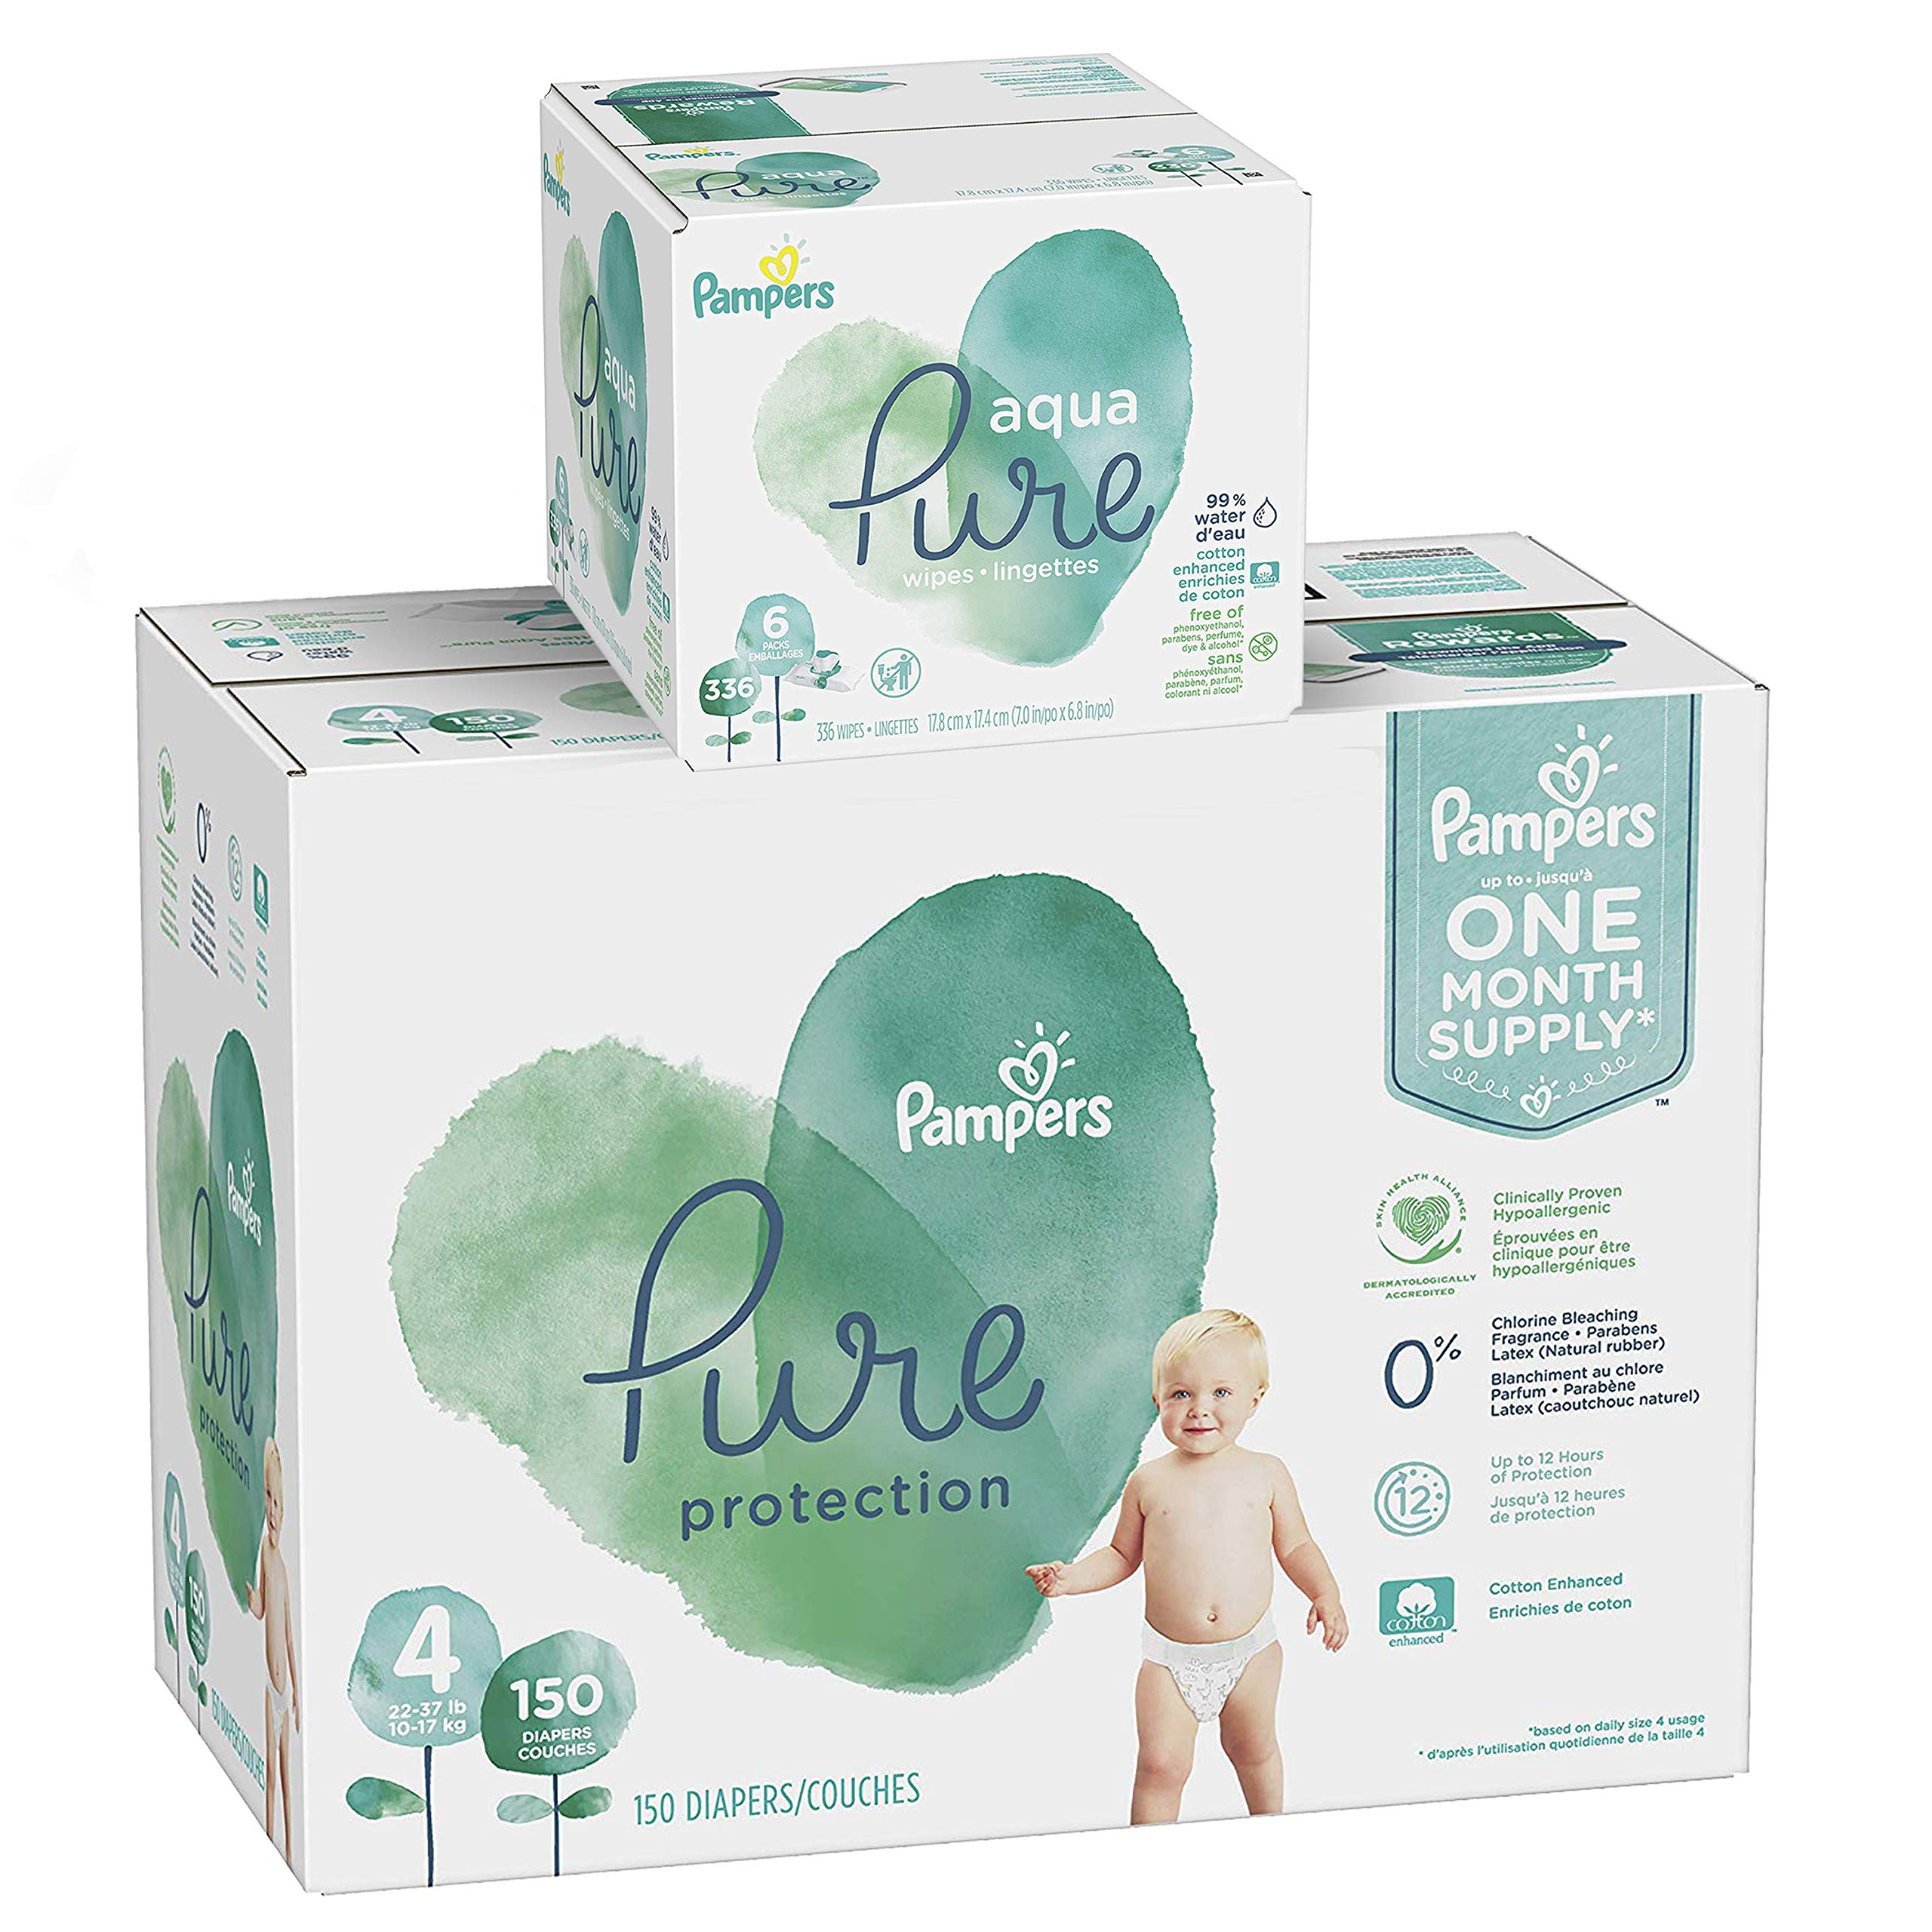 Pampers Pure Protection Diapers Size 4 150 Count with Aqua Pure 6X Pop-Top Sensitive Water Baby Wipes - 336 Count by Pampers (Image #1)